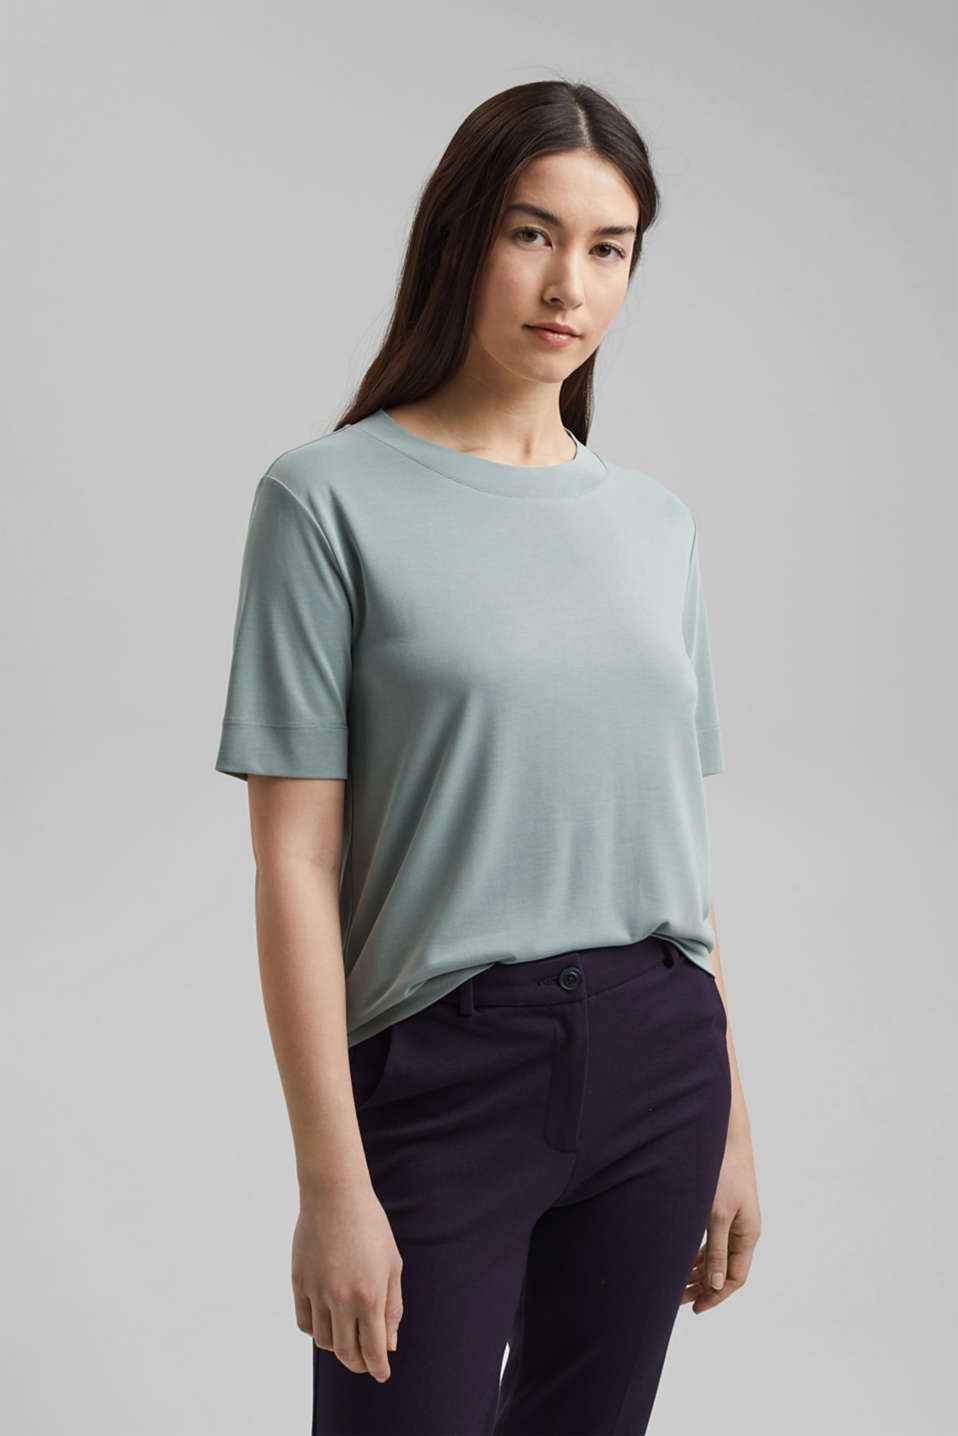 Esprit - Flowing T-shirt with modal